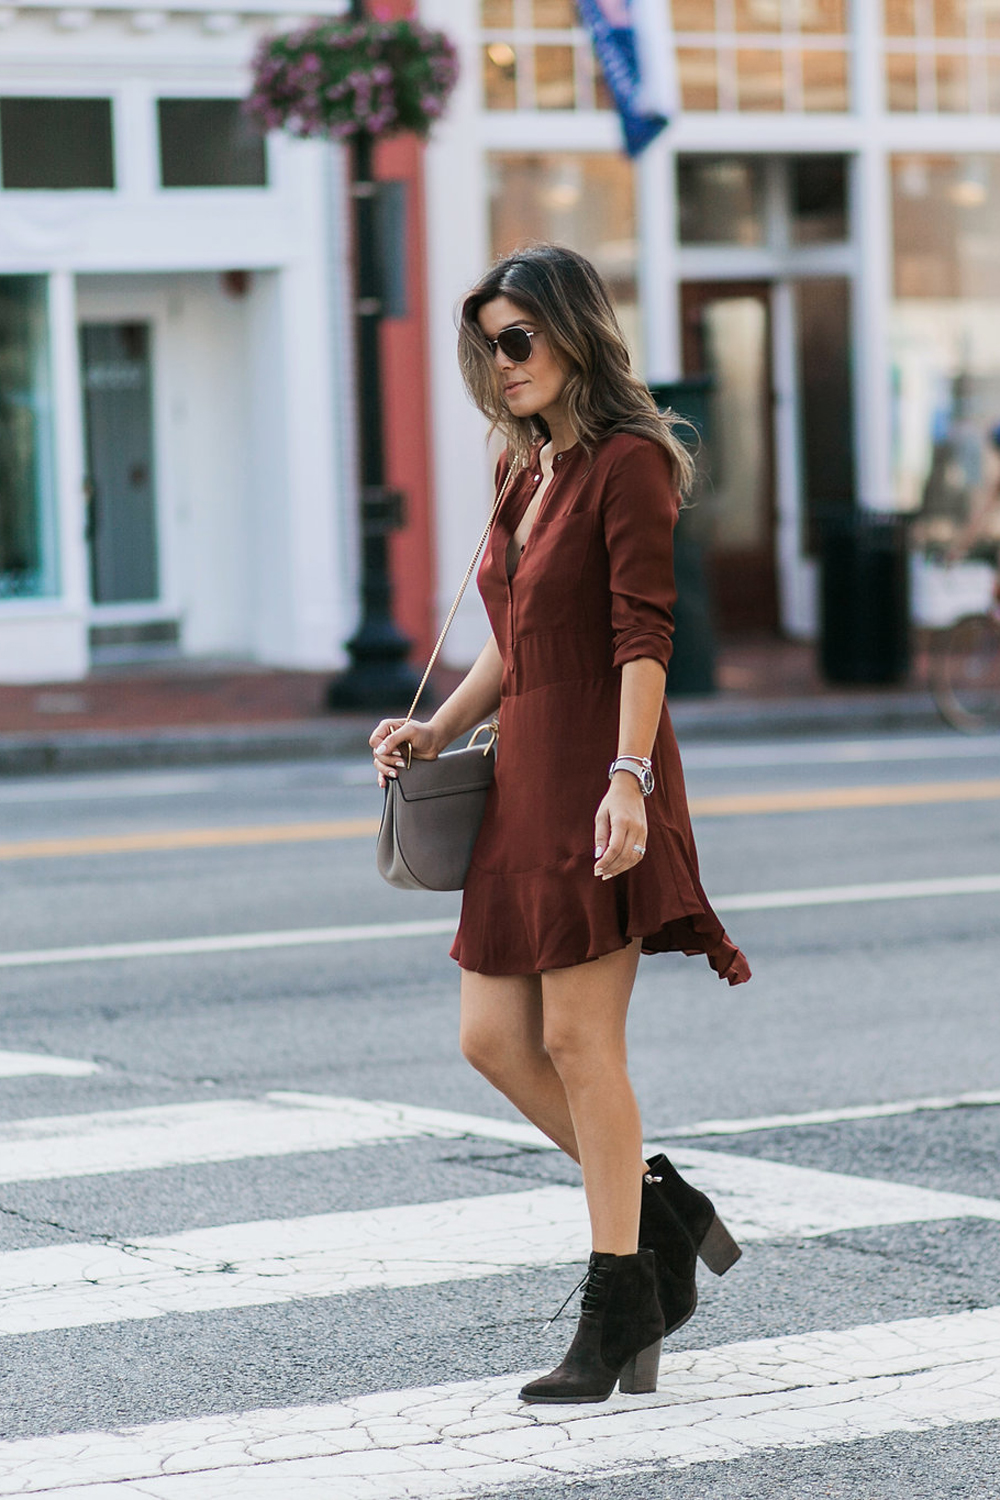 Style MBA Wears burgundy dress and brown booties